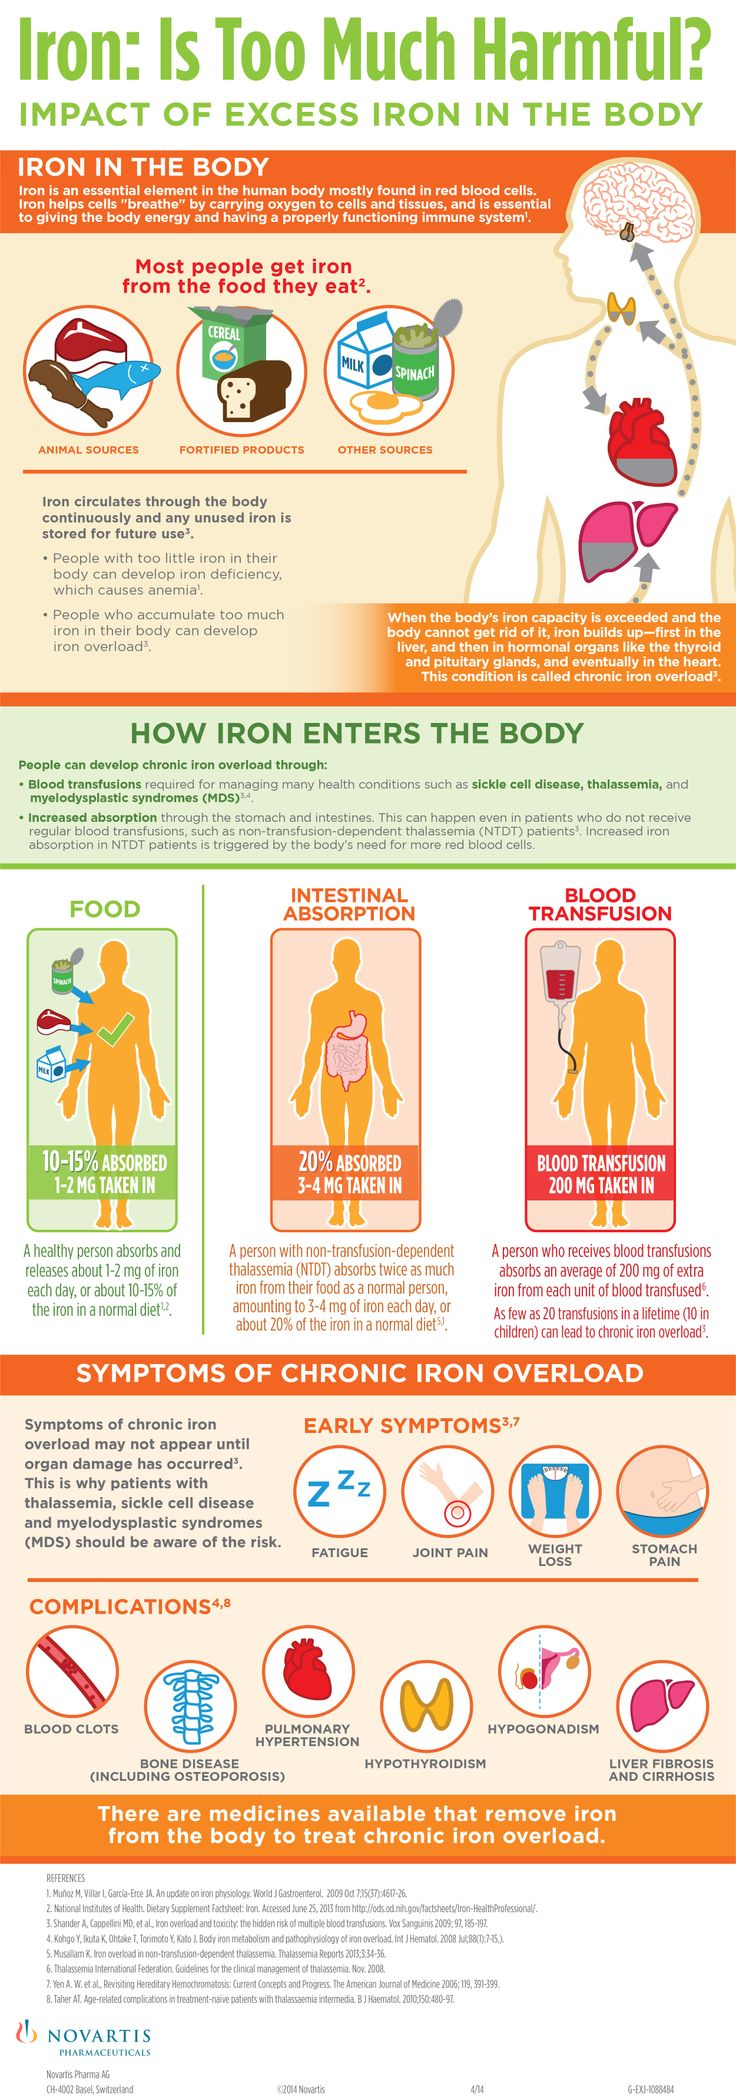 Impact of Excess Iron in the Body - Blood Transfusion Effects excess,chronic,iron,overload,blood,transer,thalassemia,infographic